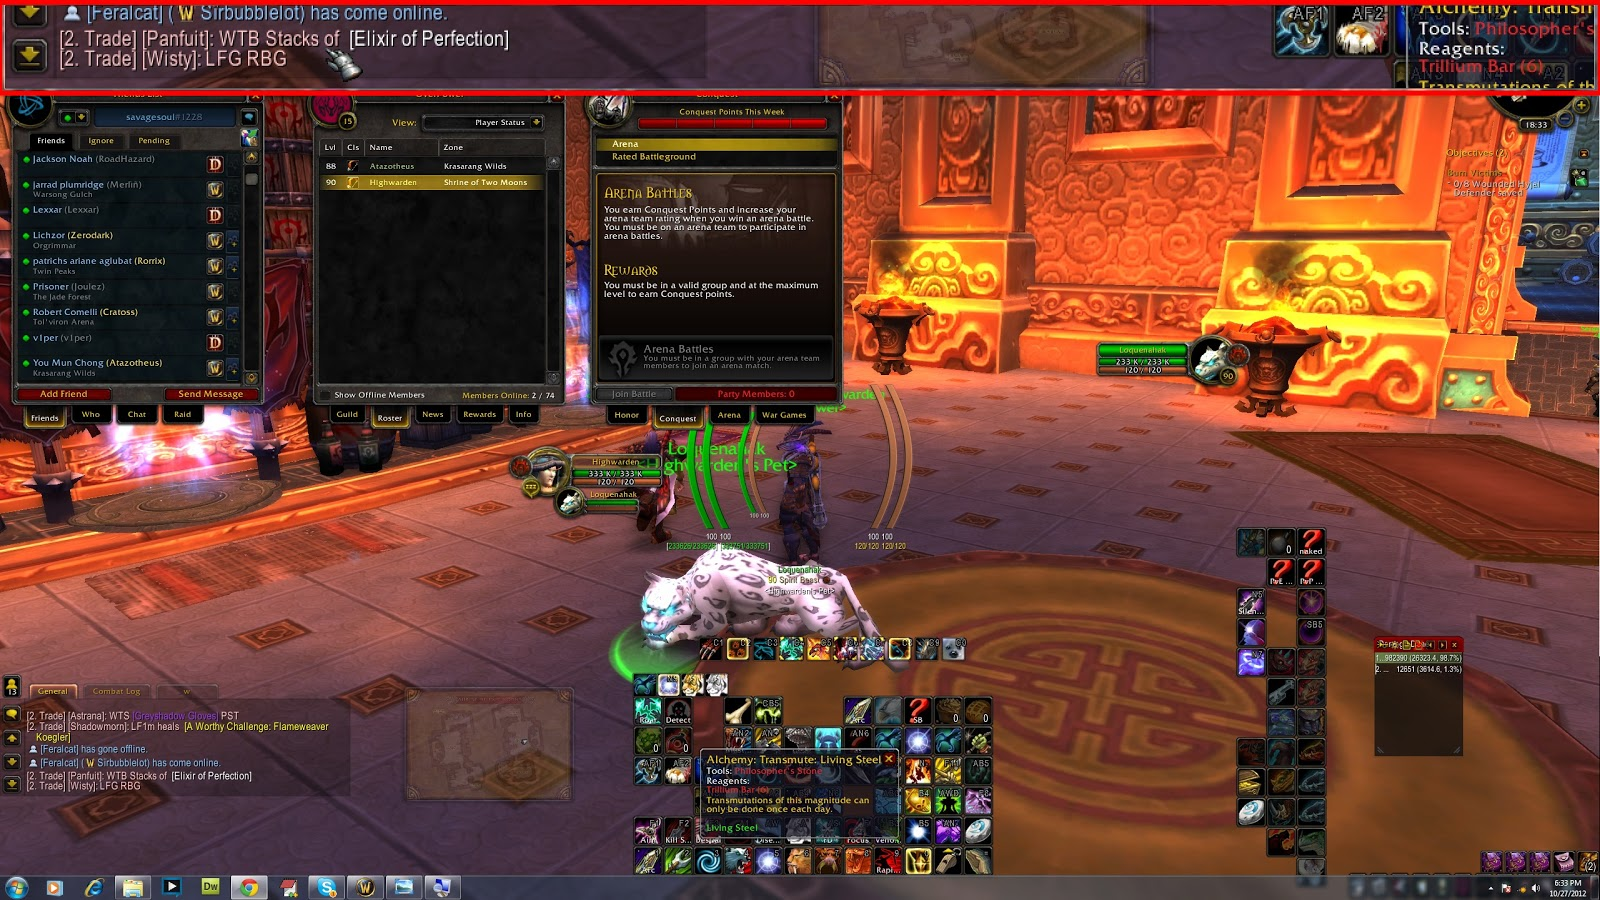 Monitoring /2 Trade Chat from anywhere in World of Warcraft